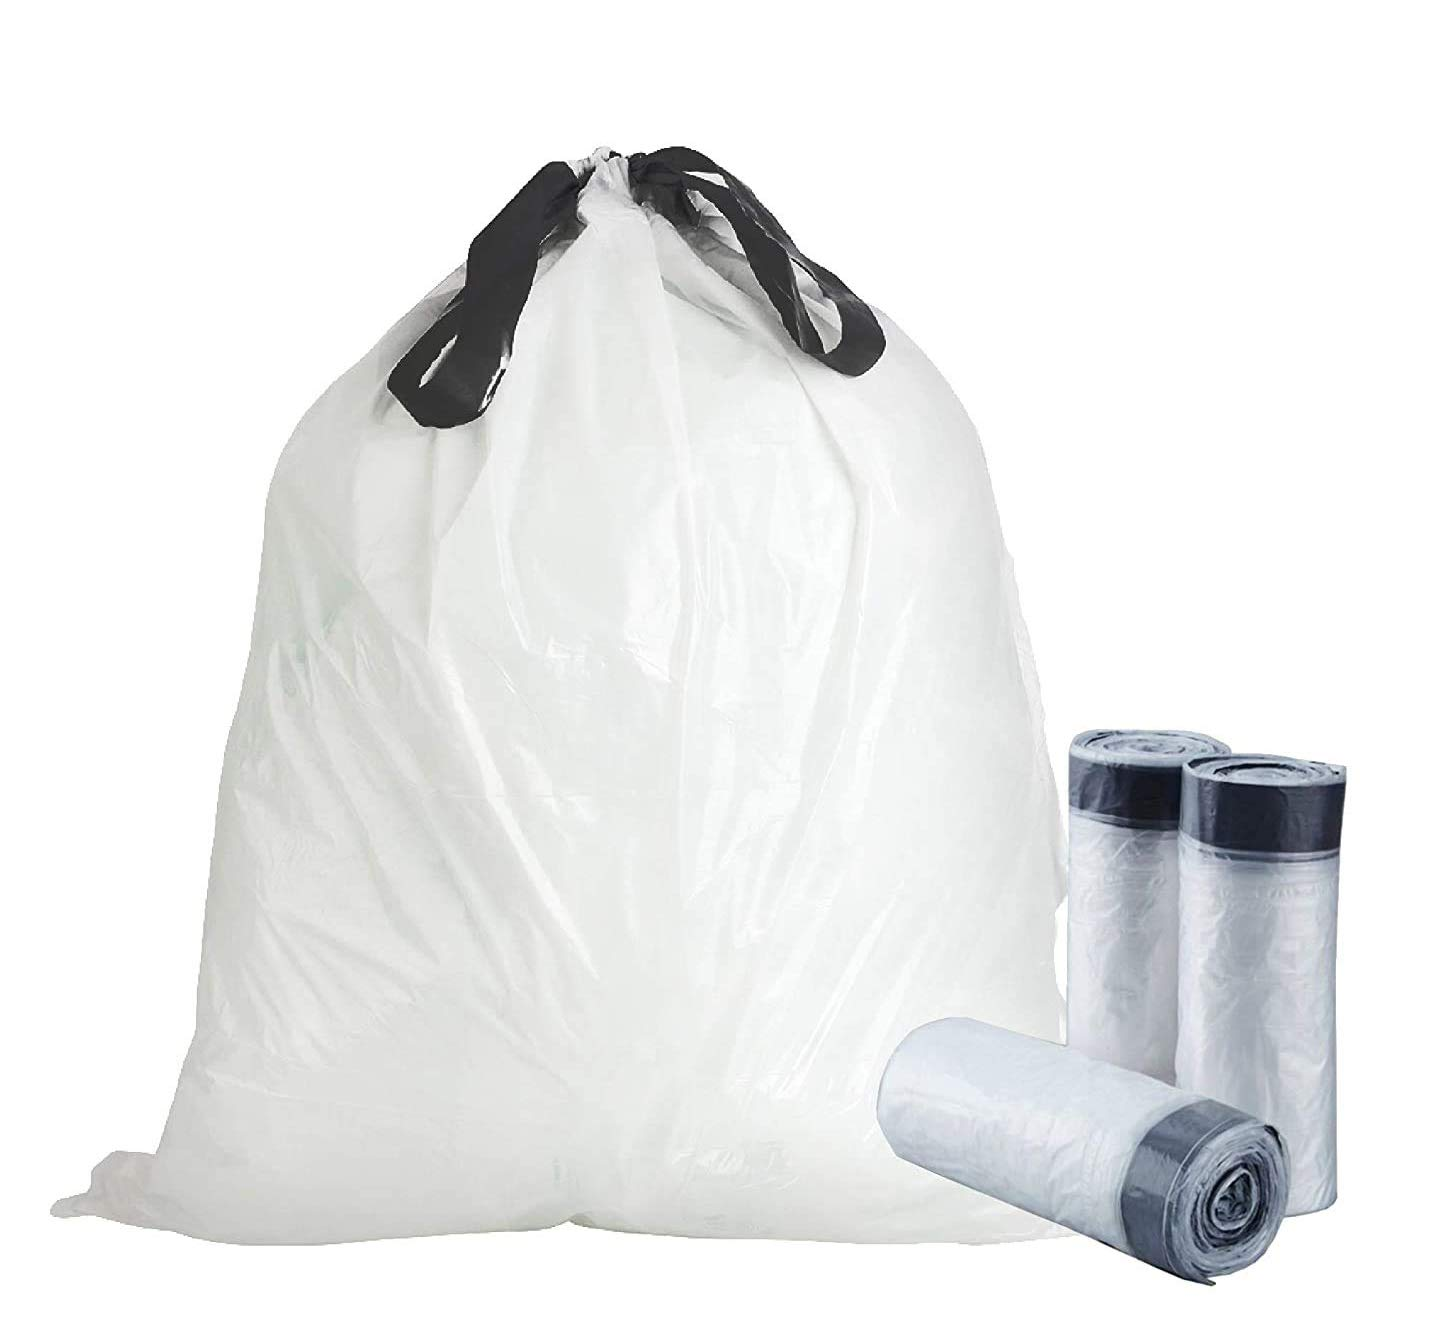 APQ Pack of 100 Clear Liners with Draw Tape 40.5 x 45.5. Ultra Thin Design 1 mil 55 Gallon Linear Low Density Polyethylene Bags 40.5x45.5 Side Sealed Unprinted Poly Bags for Disposing Waste, Schools.